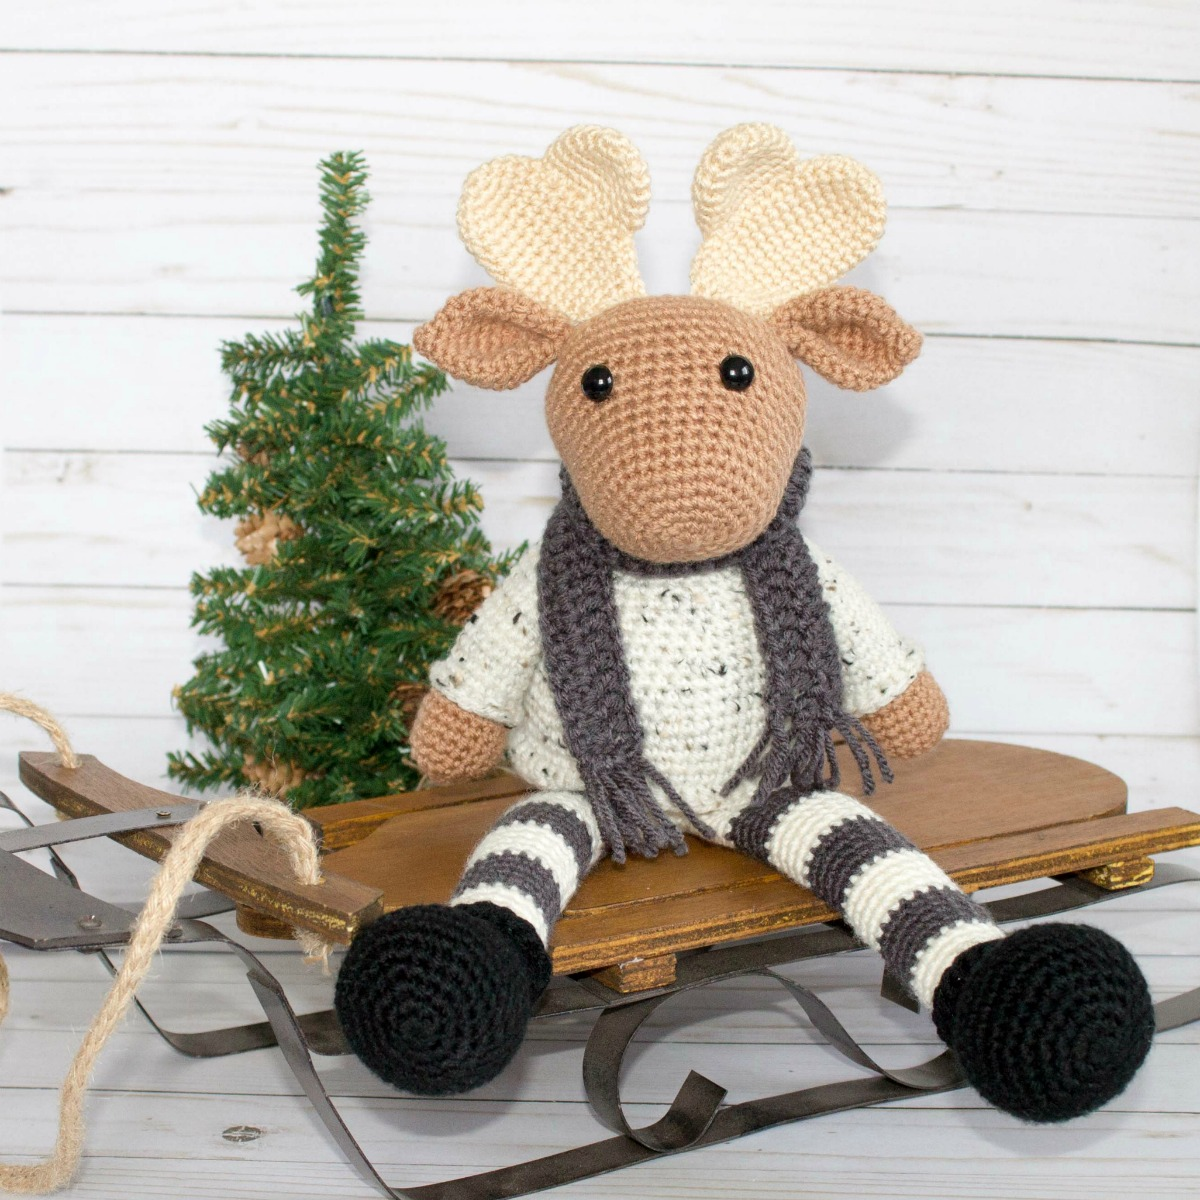 Crochet Moose - Fill this holiday season with crochet toy projects that will fill your home with more joy than ever before. #crochettoys #christmastoys #crochetamigurumi